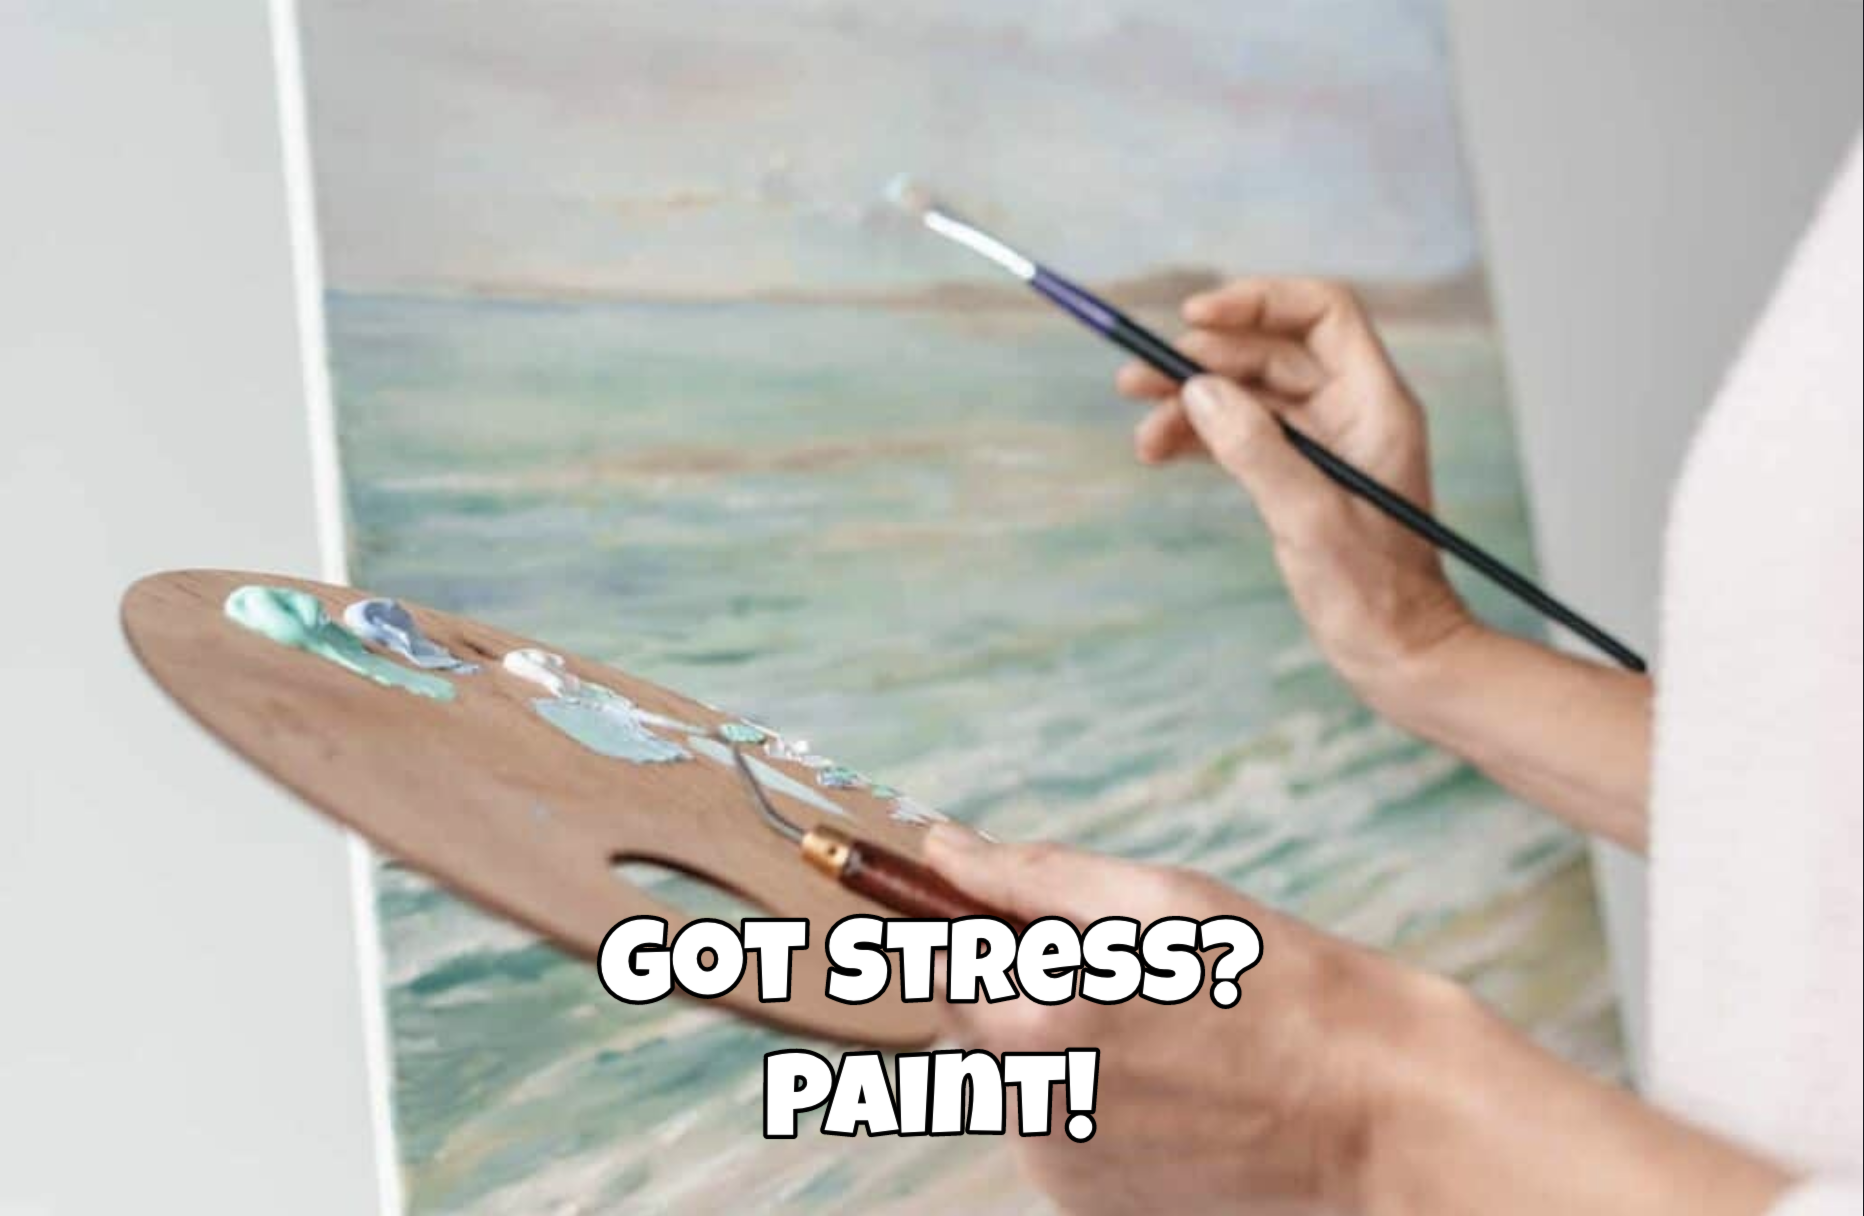 Stressed? Come paint!